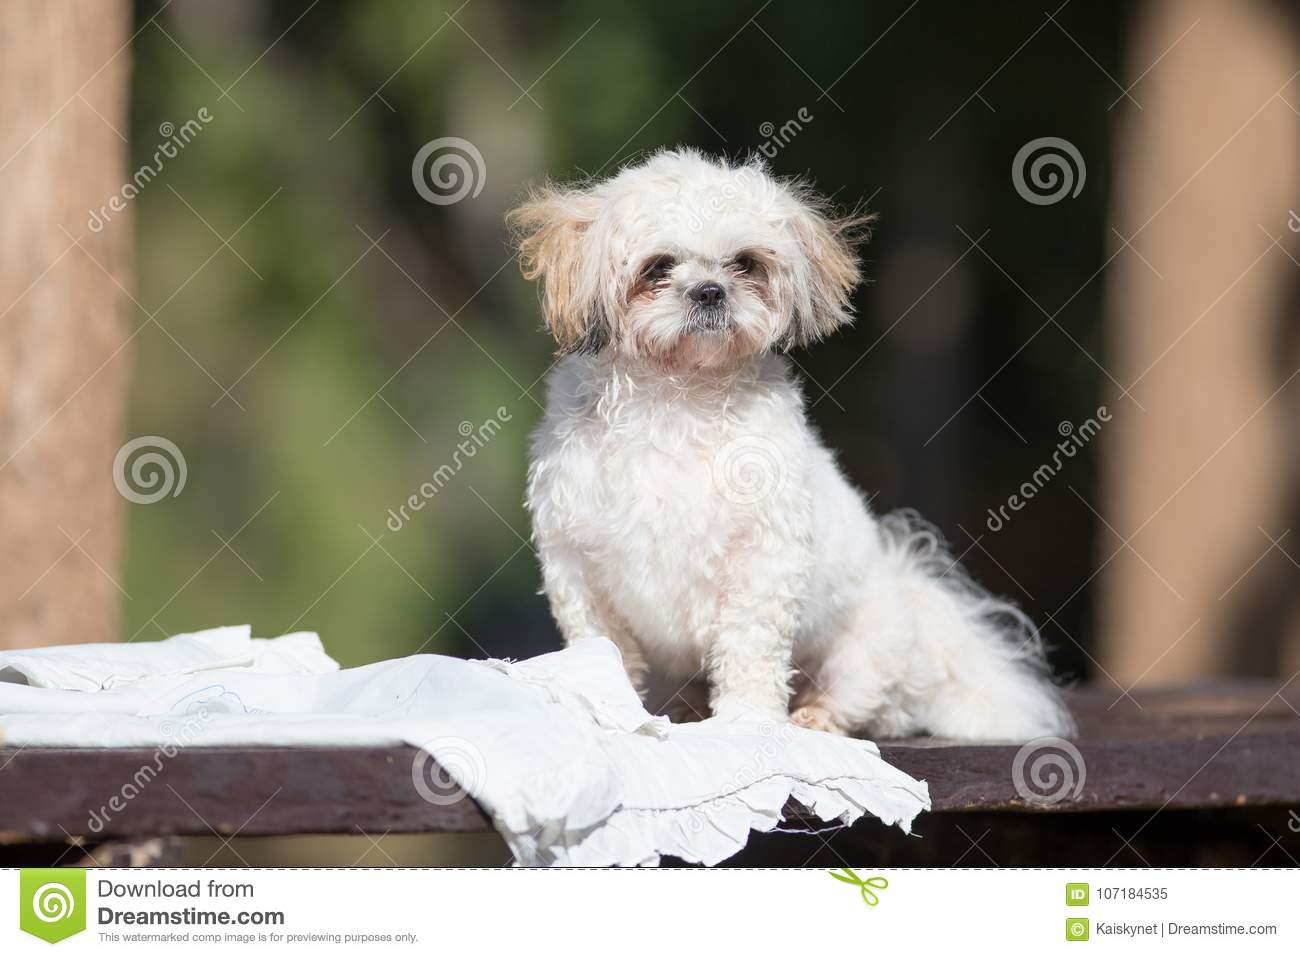 Funny Cute Shih Tzu Puppy Dog After Bath Stock Image Image Of Hair Clean 107184535